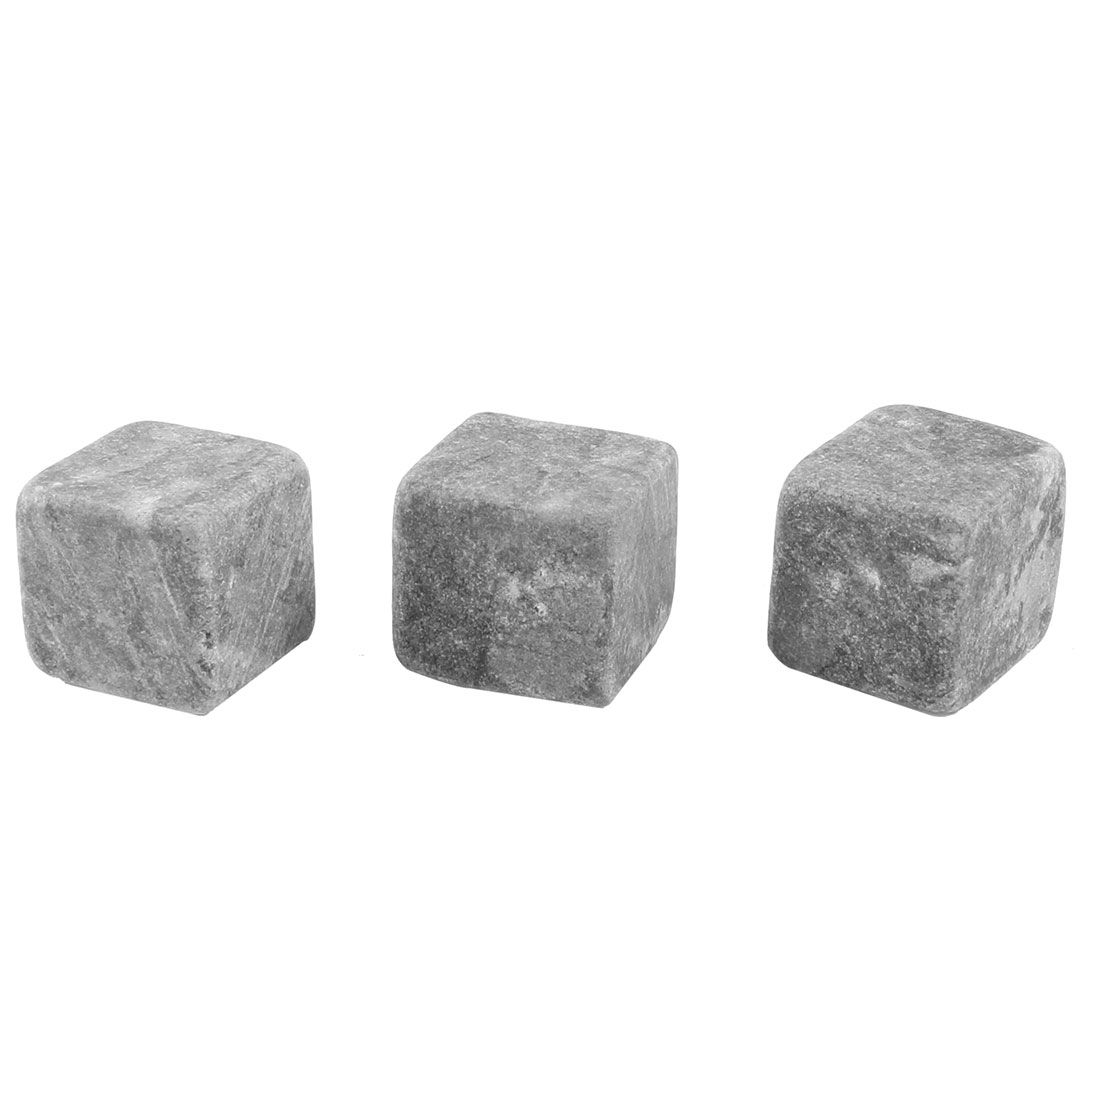 3 Pcs Gray Ceramic Whisky Stones Ice Cube 20mmx20mmx20mm w Drawstring Pouch